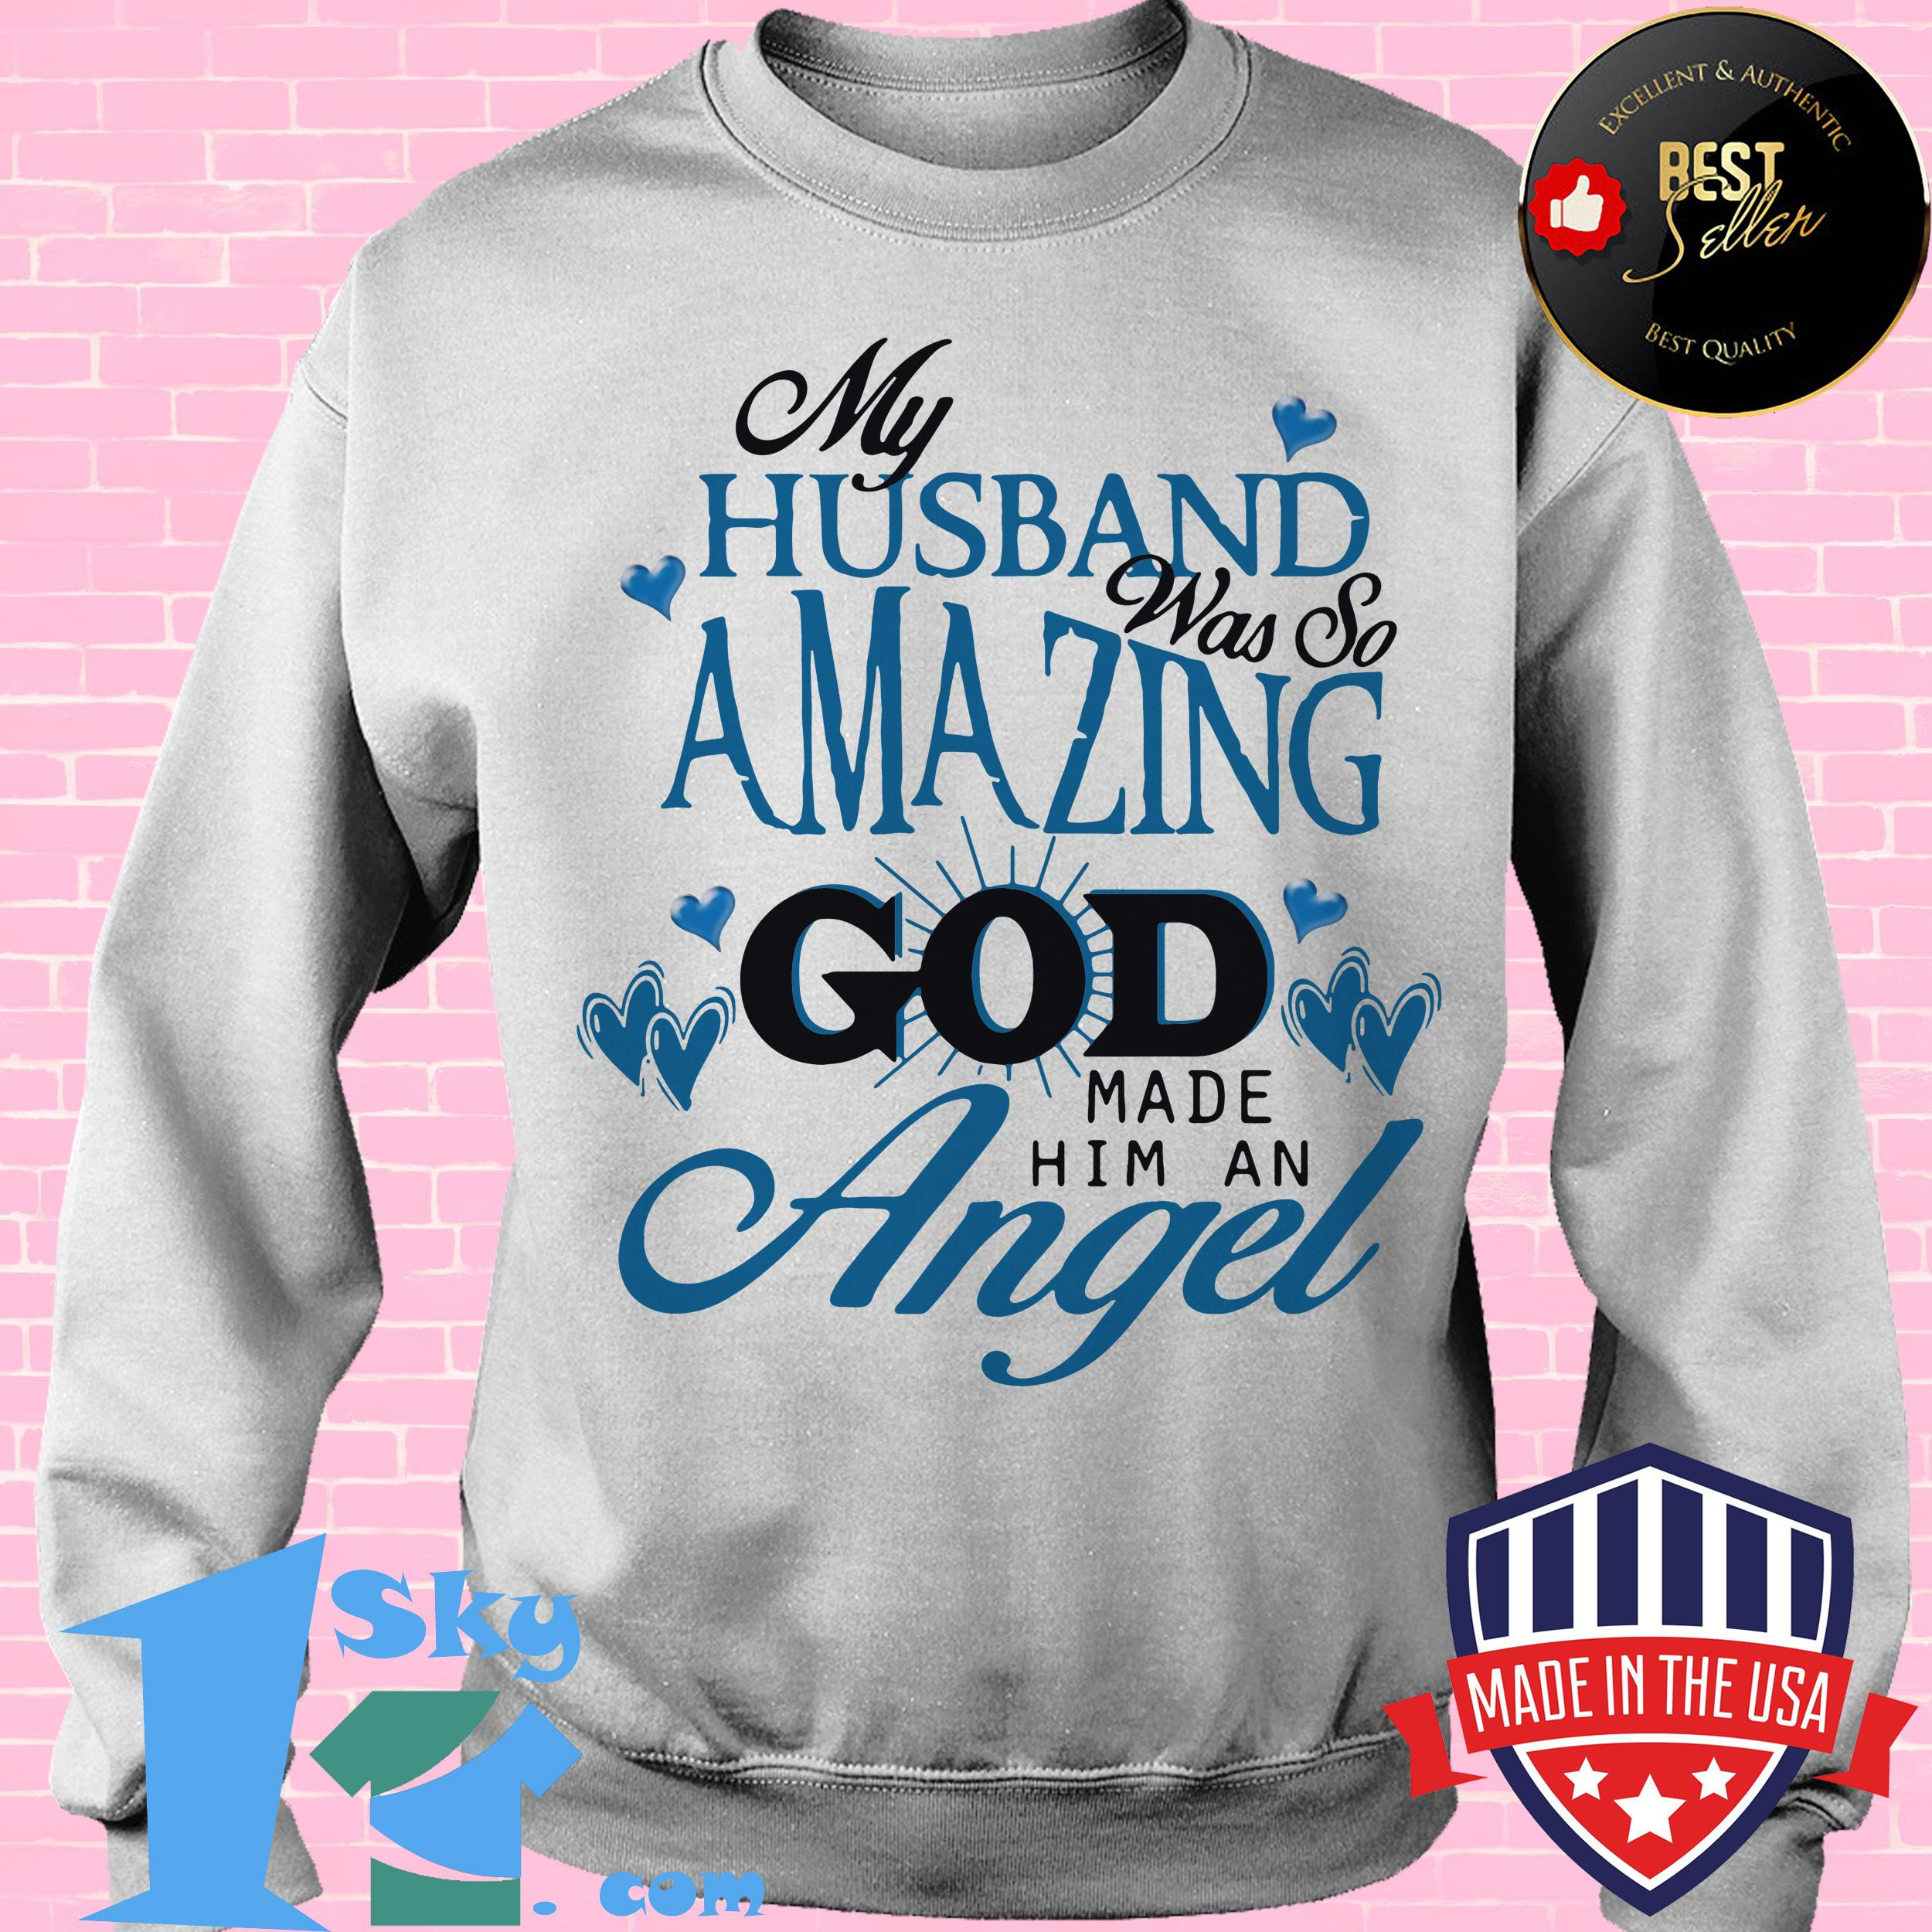 my husband was so amazing god made him an angel sweatshirt - My Husband Was So Amazing God Made Him An Angel Shirt